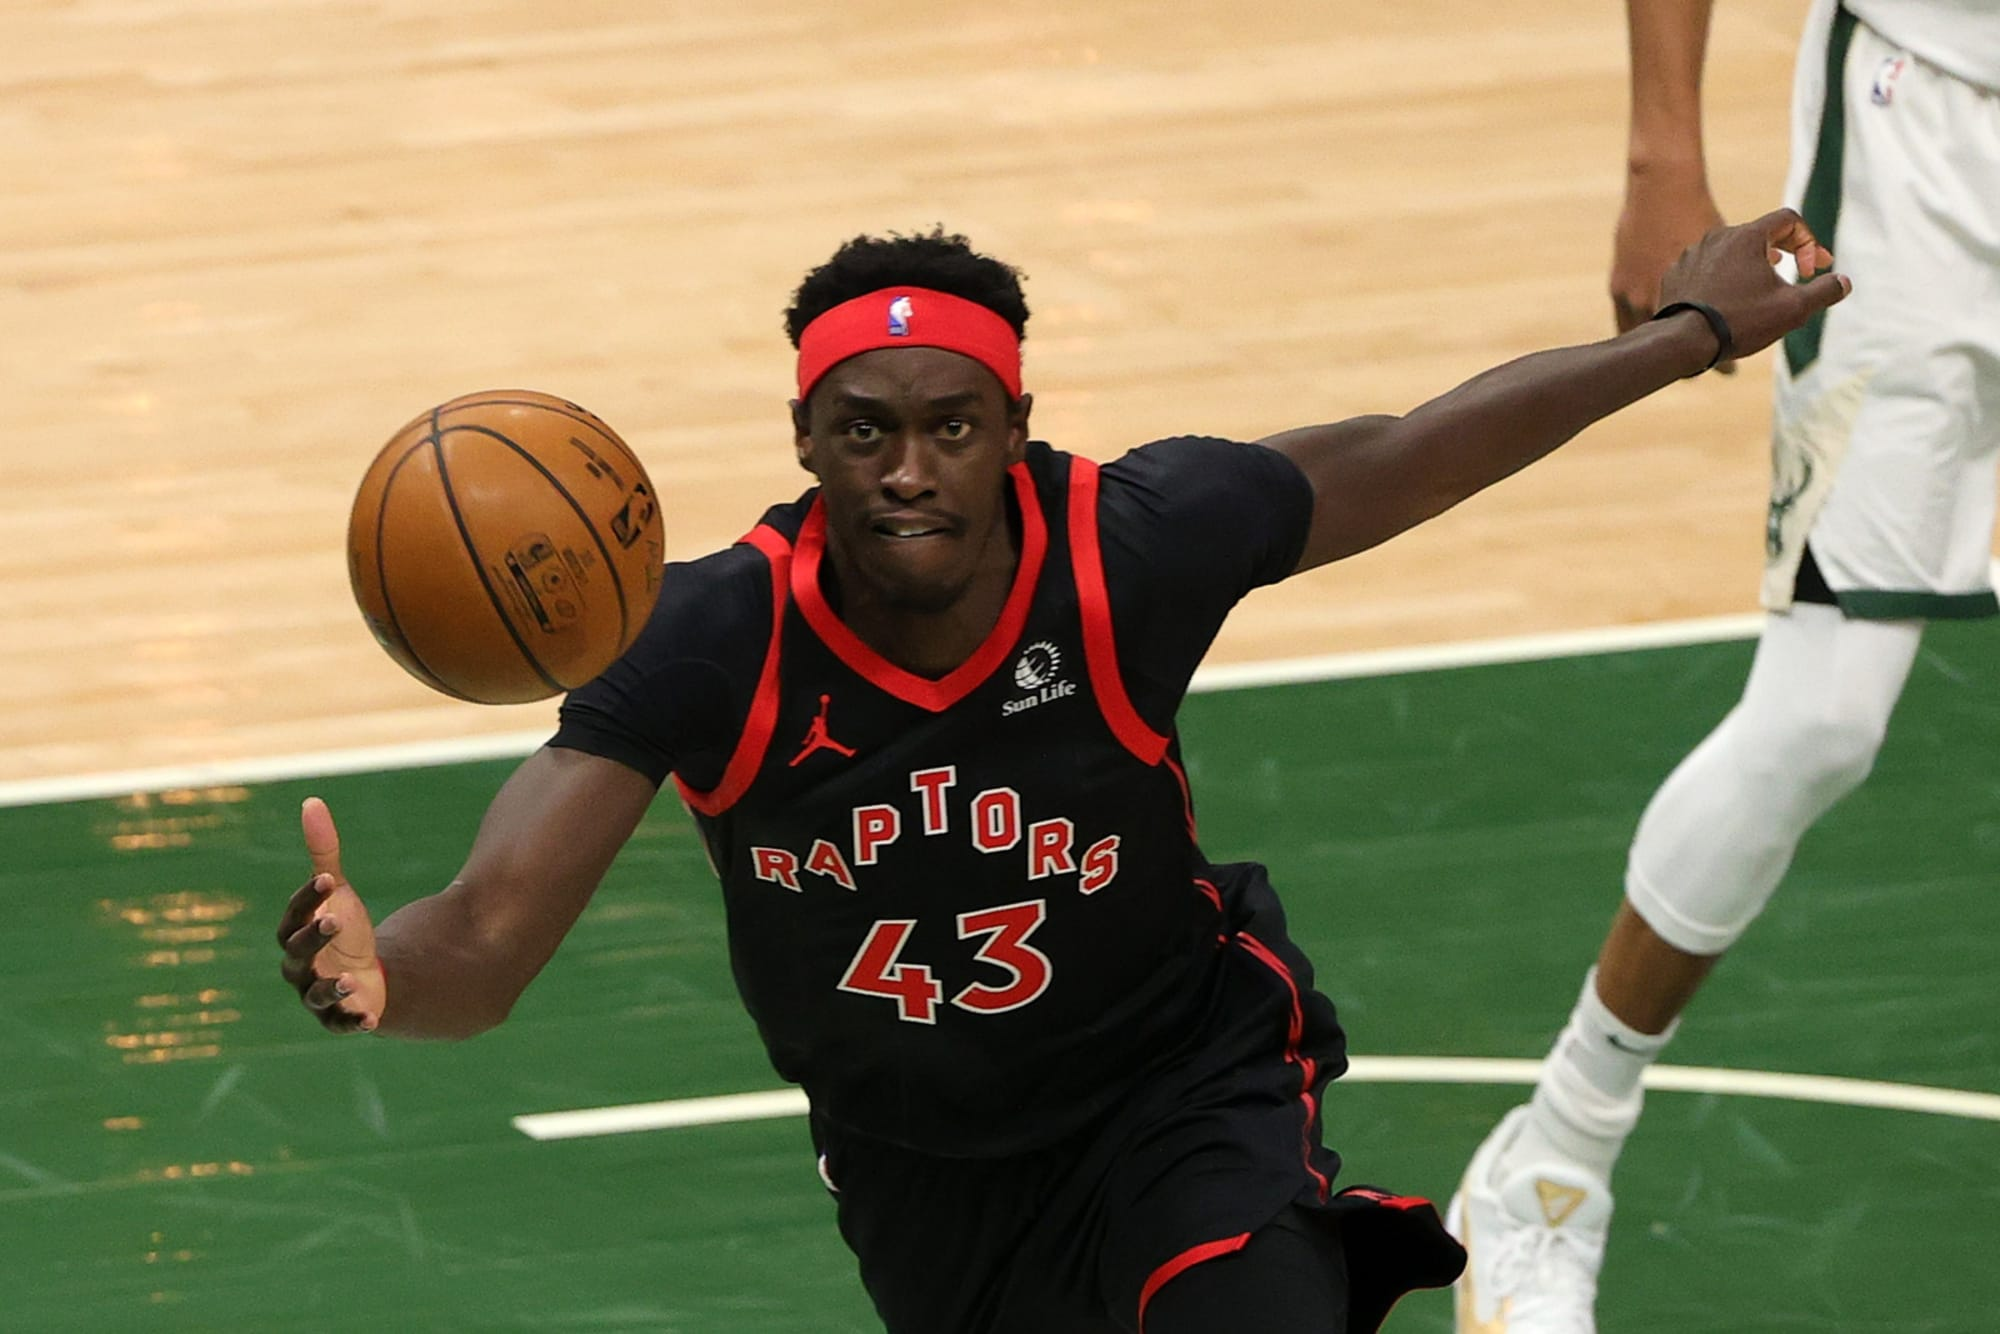 Raptors: Shaq just learned Pascal Siakam's first name at halftime